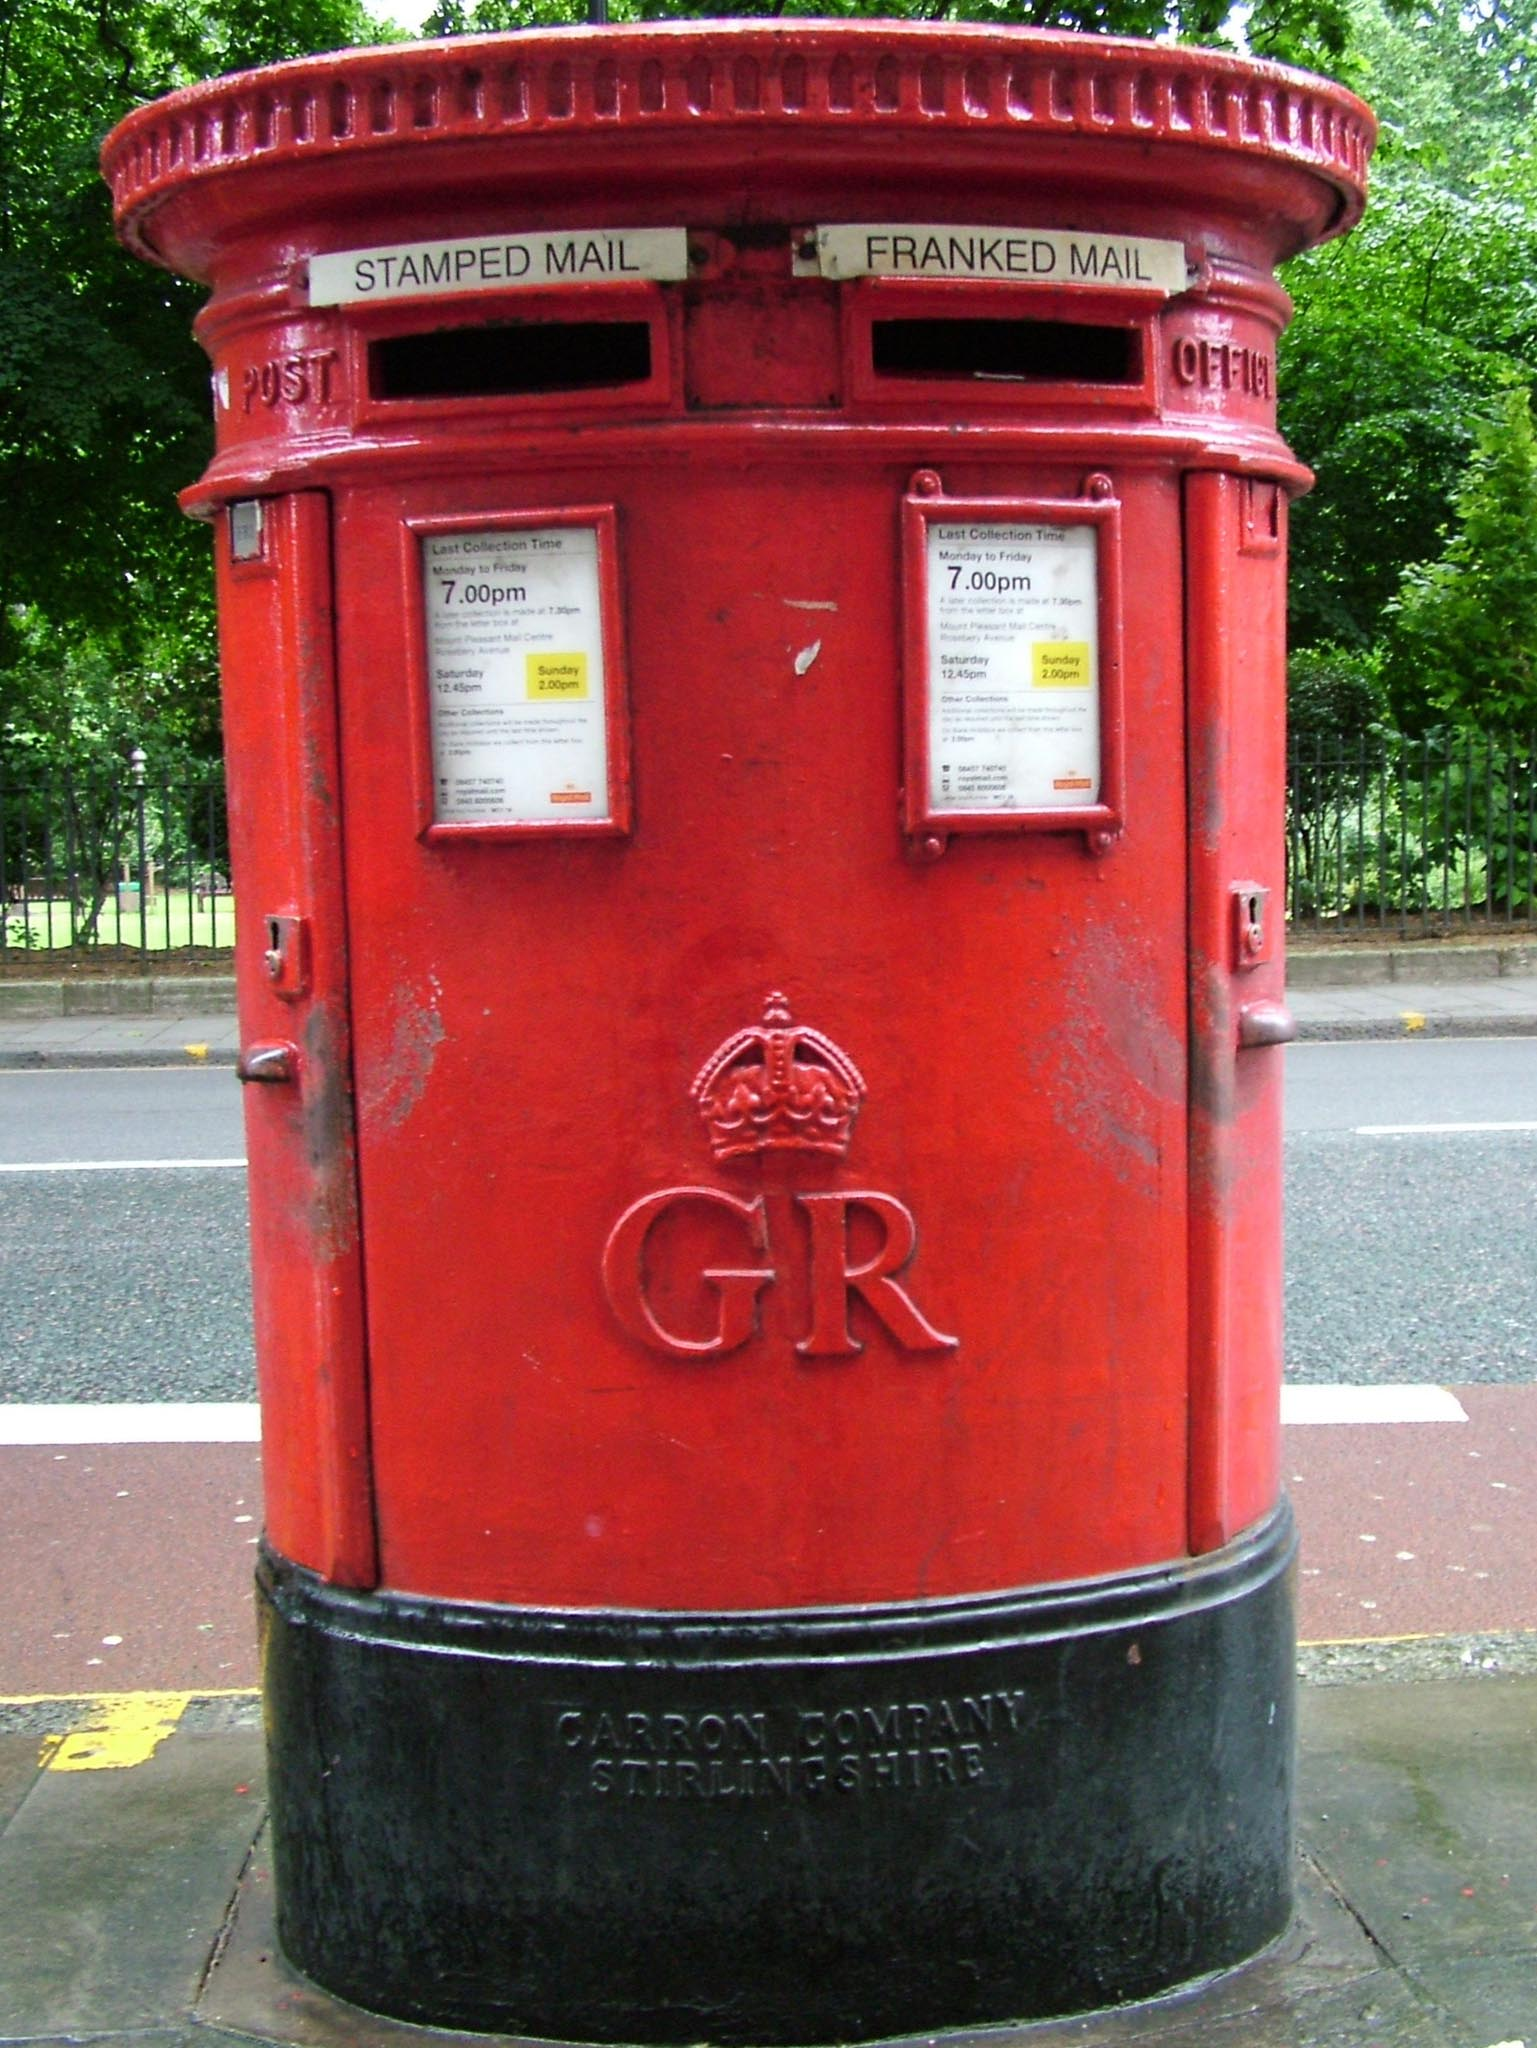 GR pillar box 1930s, London. Gerry Cork